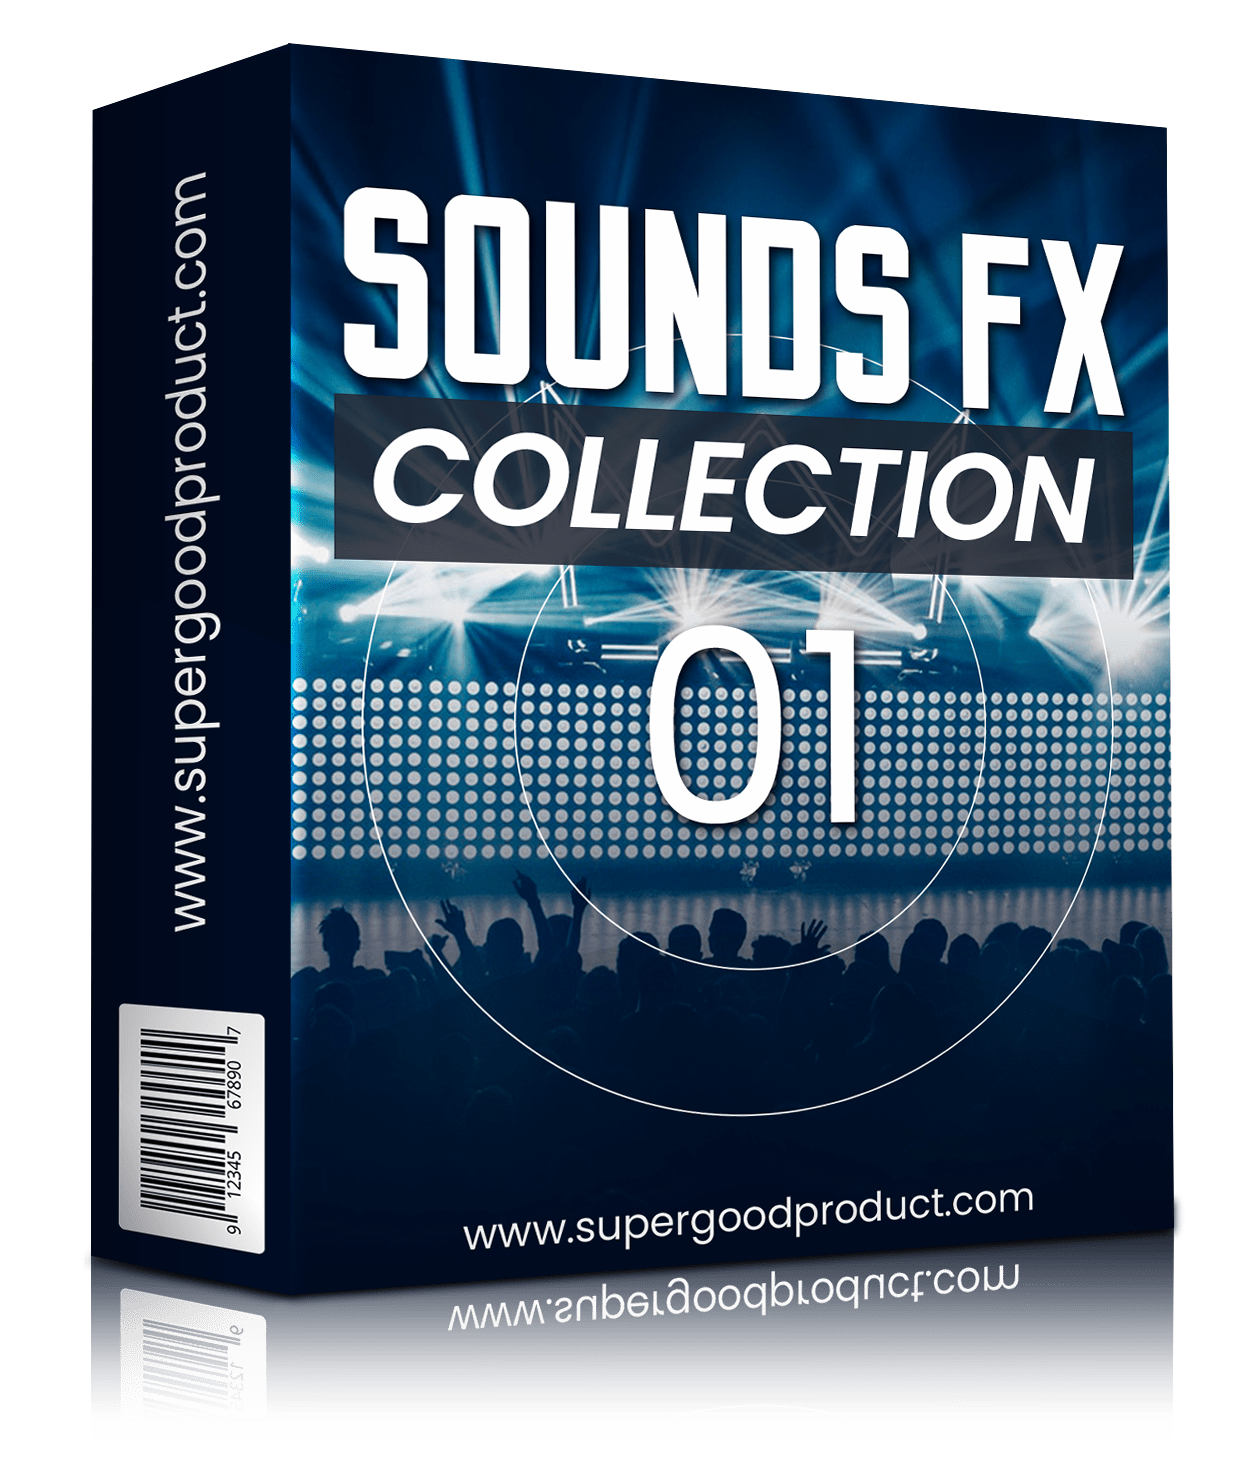 Sounds-FX-Collection-1